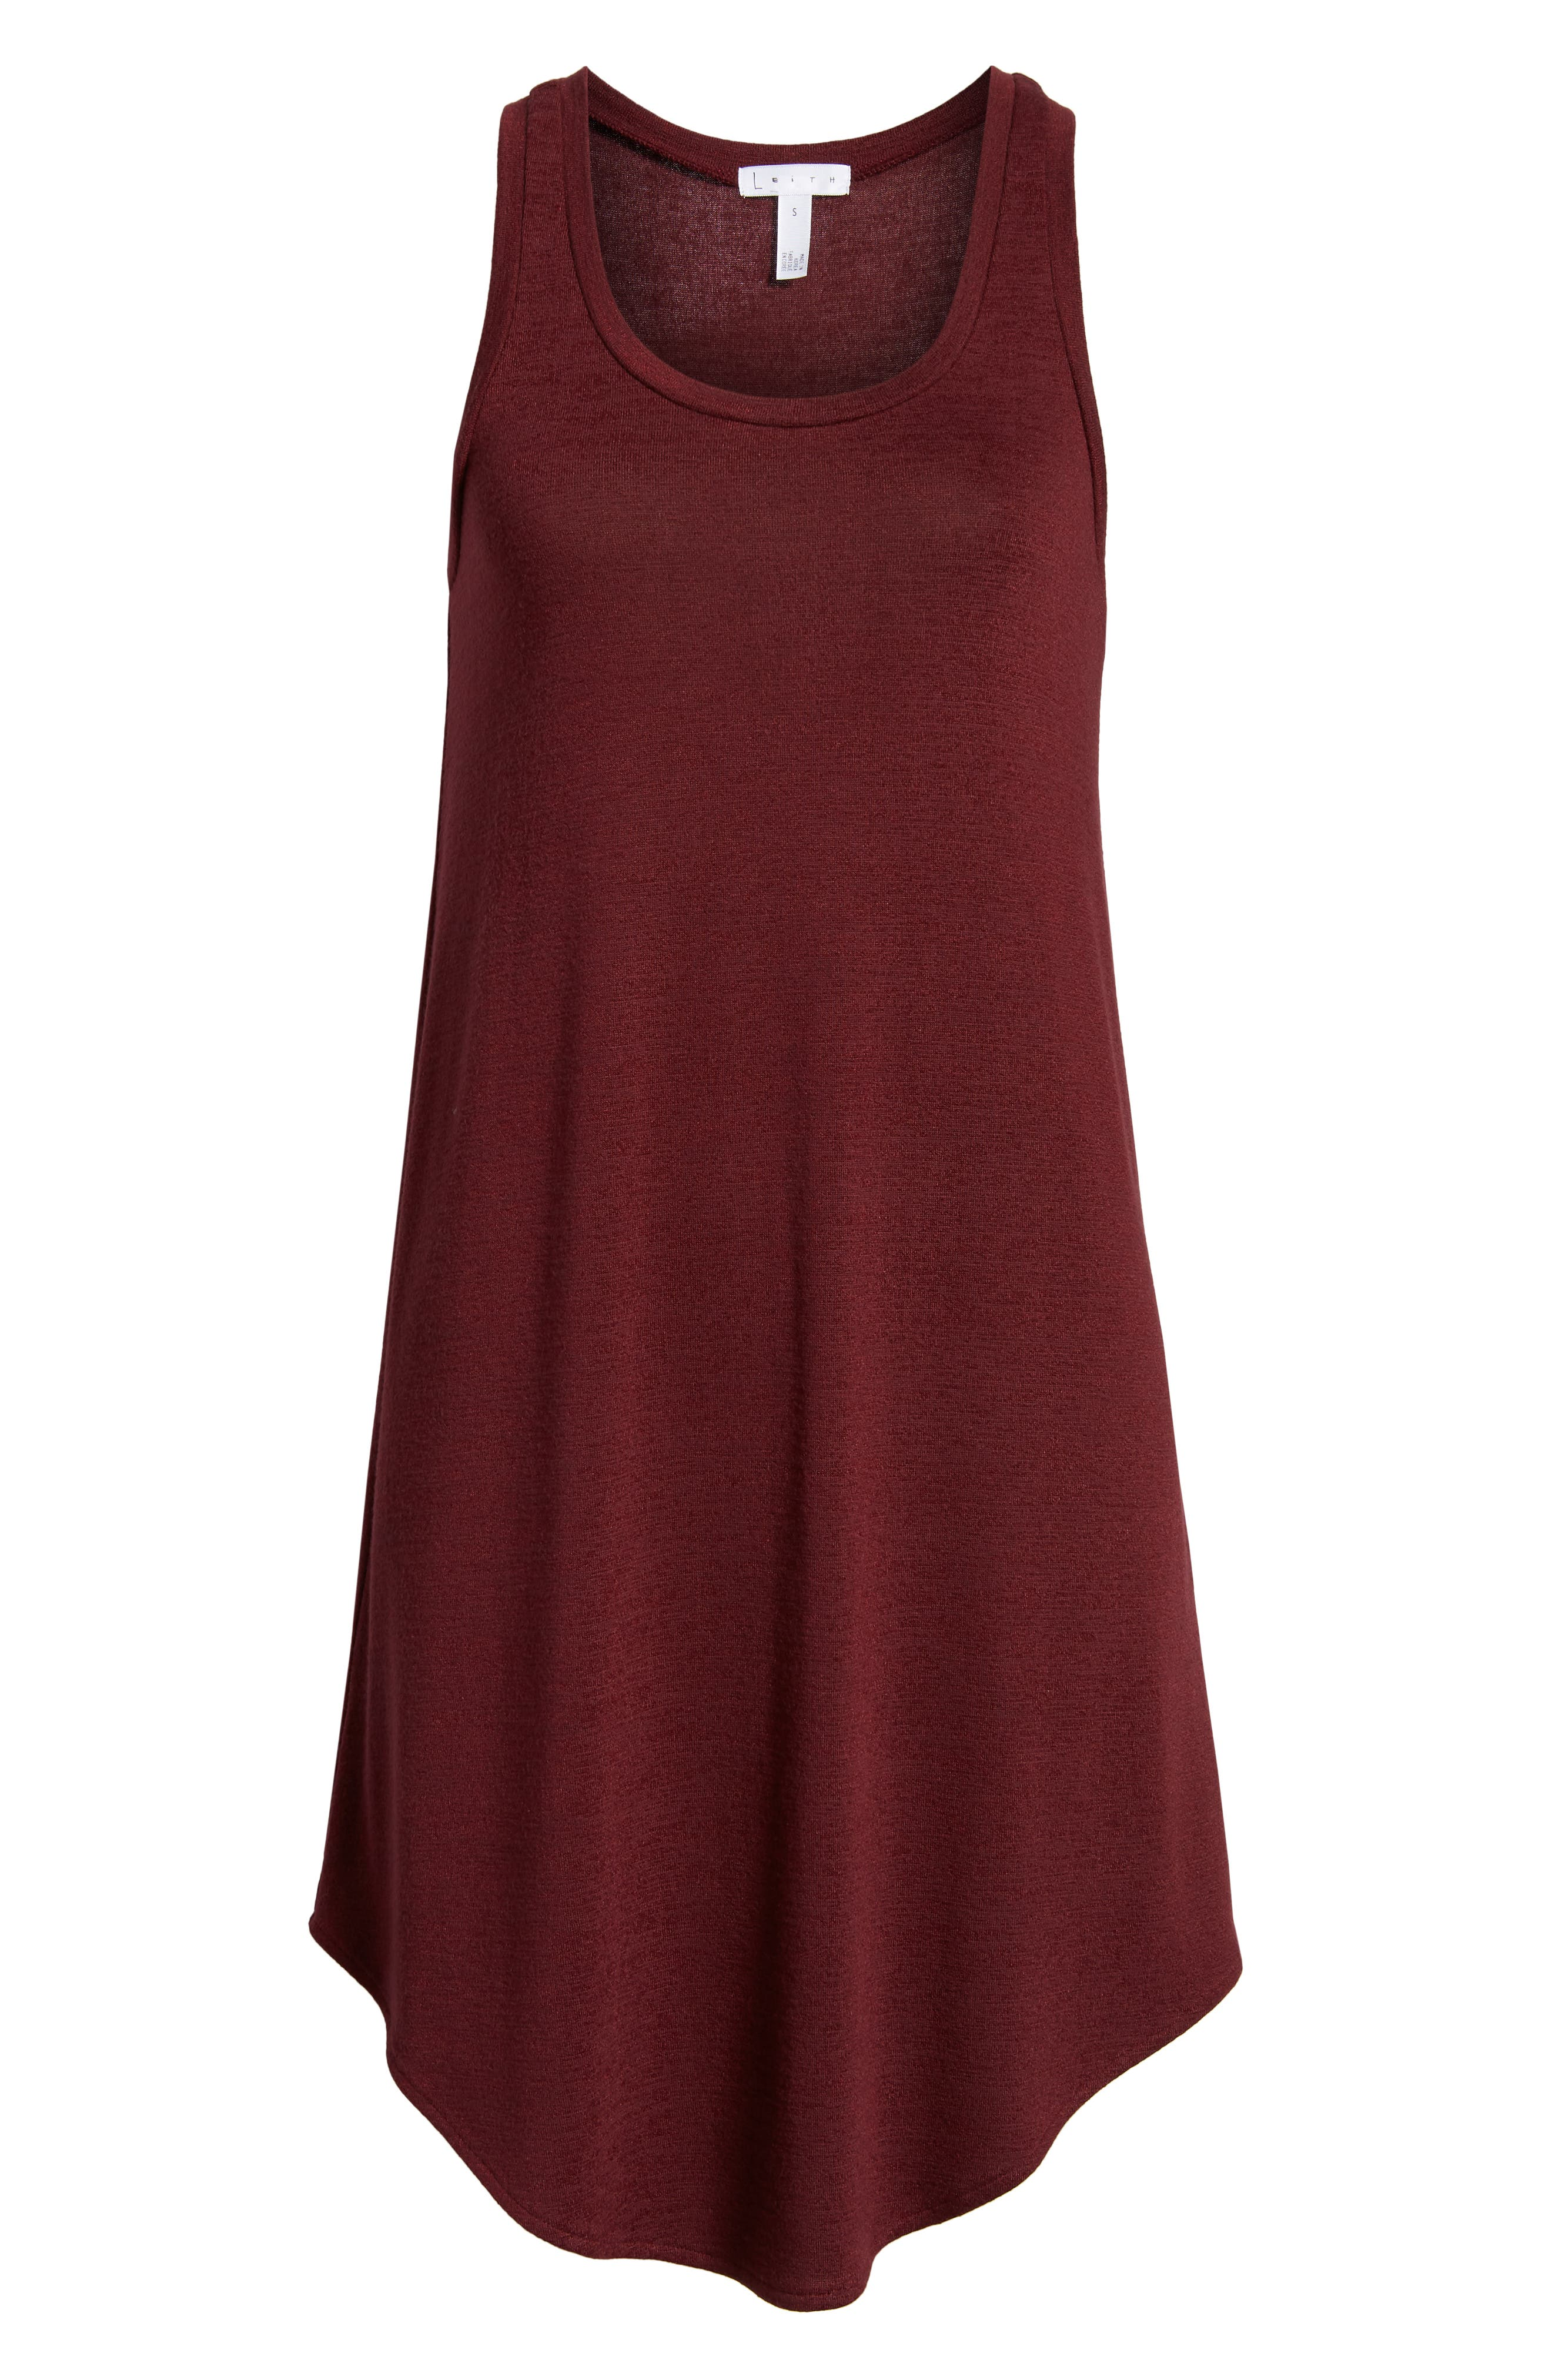 Tank Shift Dress,                             Alternate thumbnail 7, color,                             Red Tannin